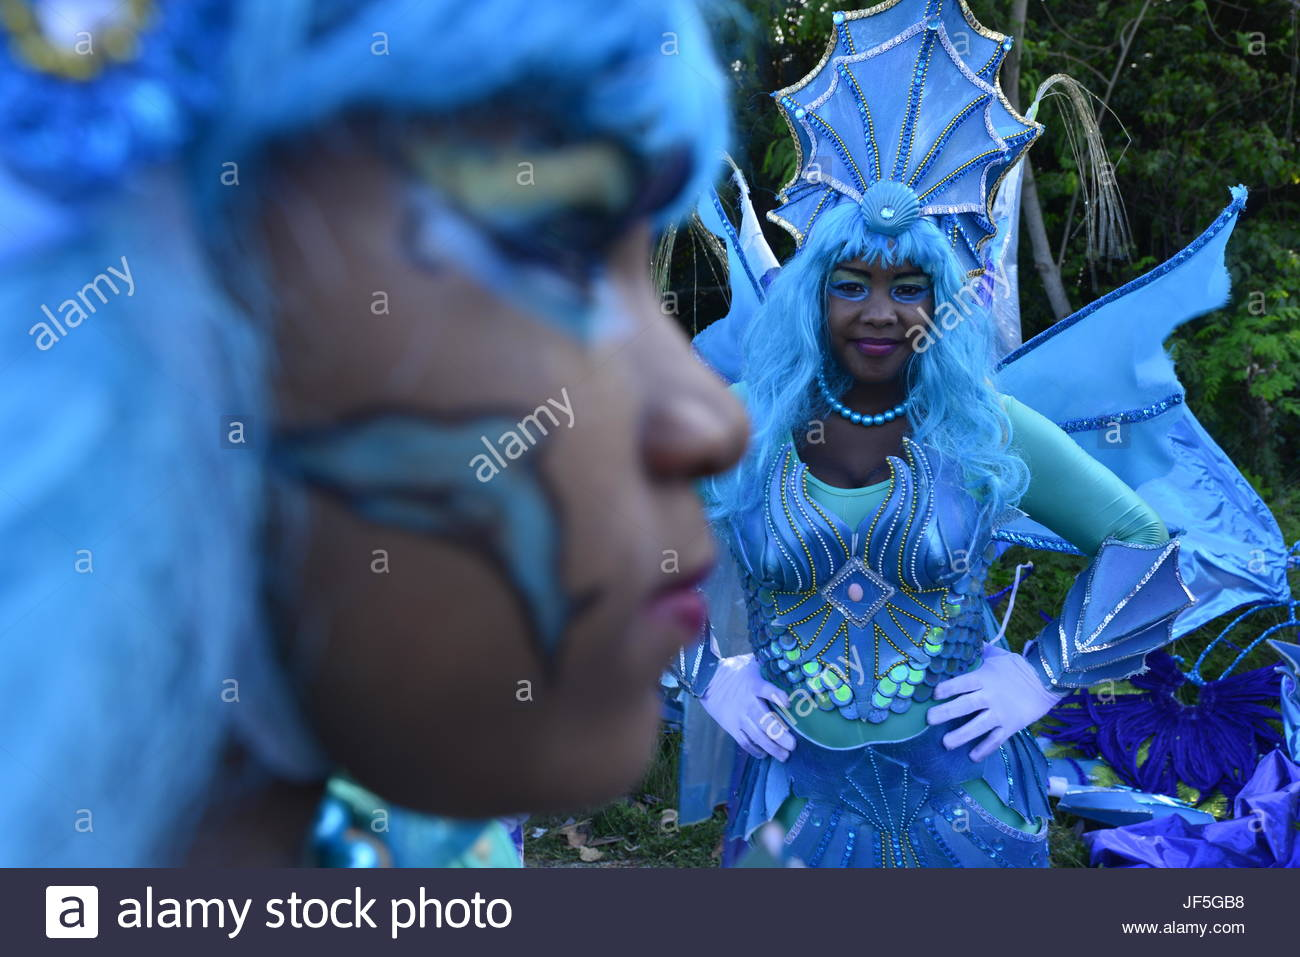 Women wearing glitzy blue costumes and headgear during Carnival. - Stock Image